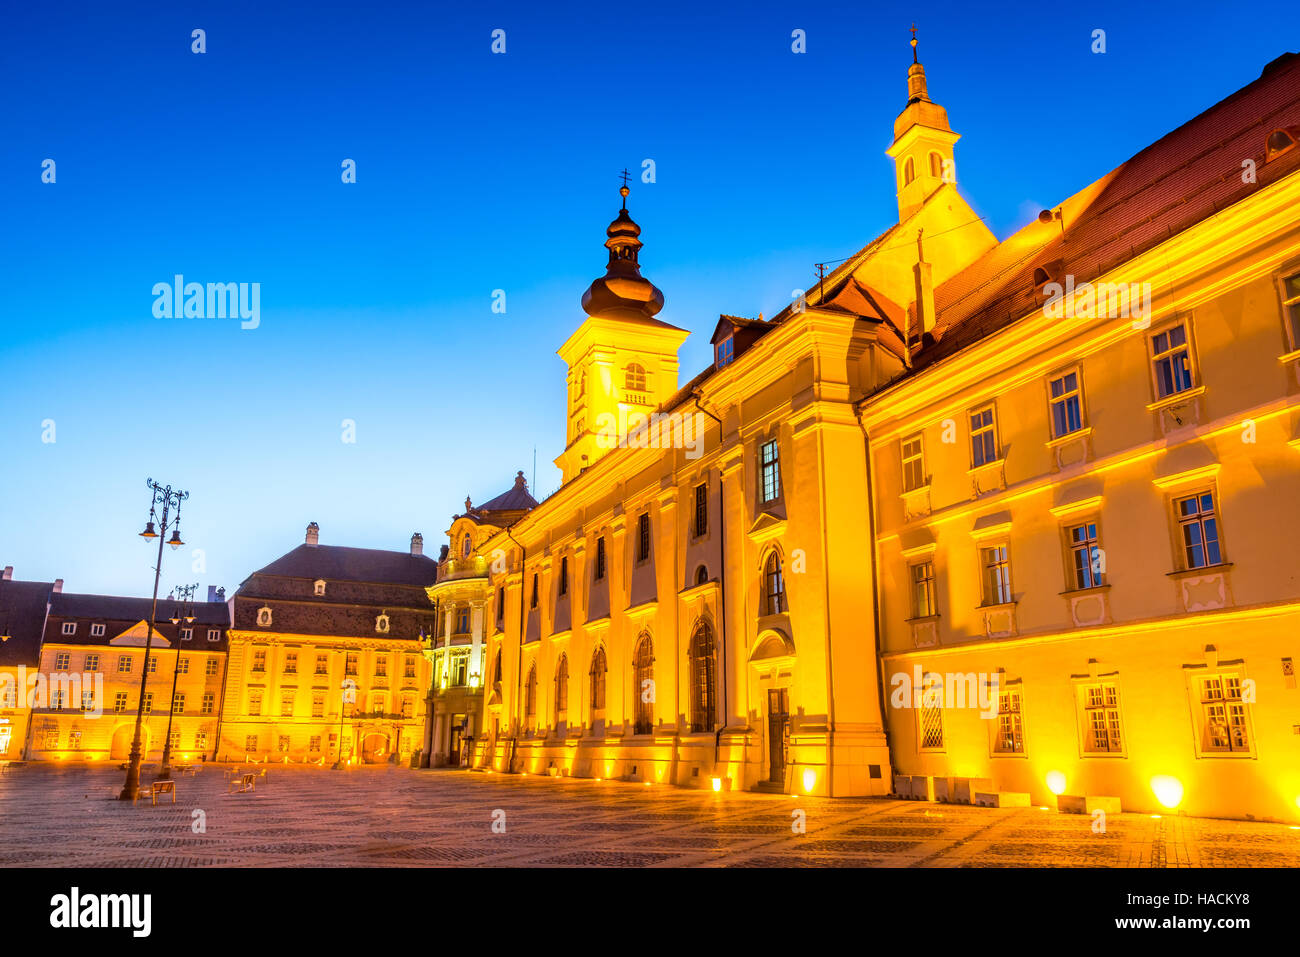 Sibiu, Romania. Twilight image of Large Square, Transylvania. - Stock Image